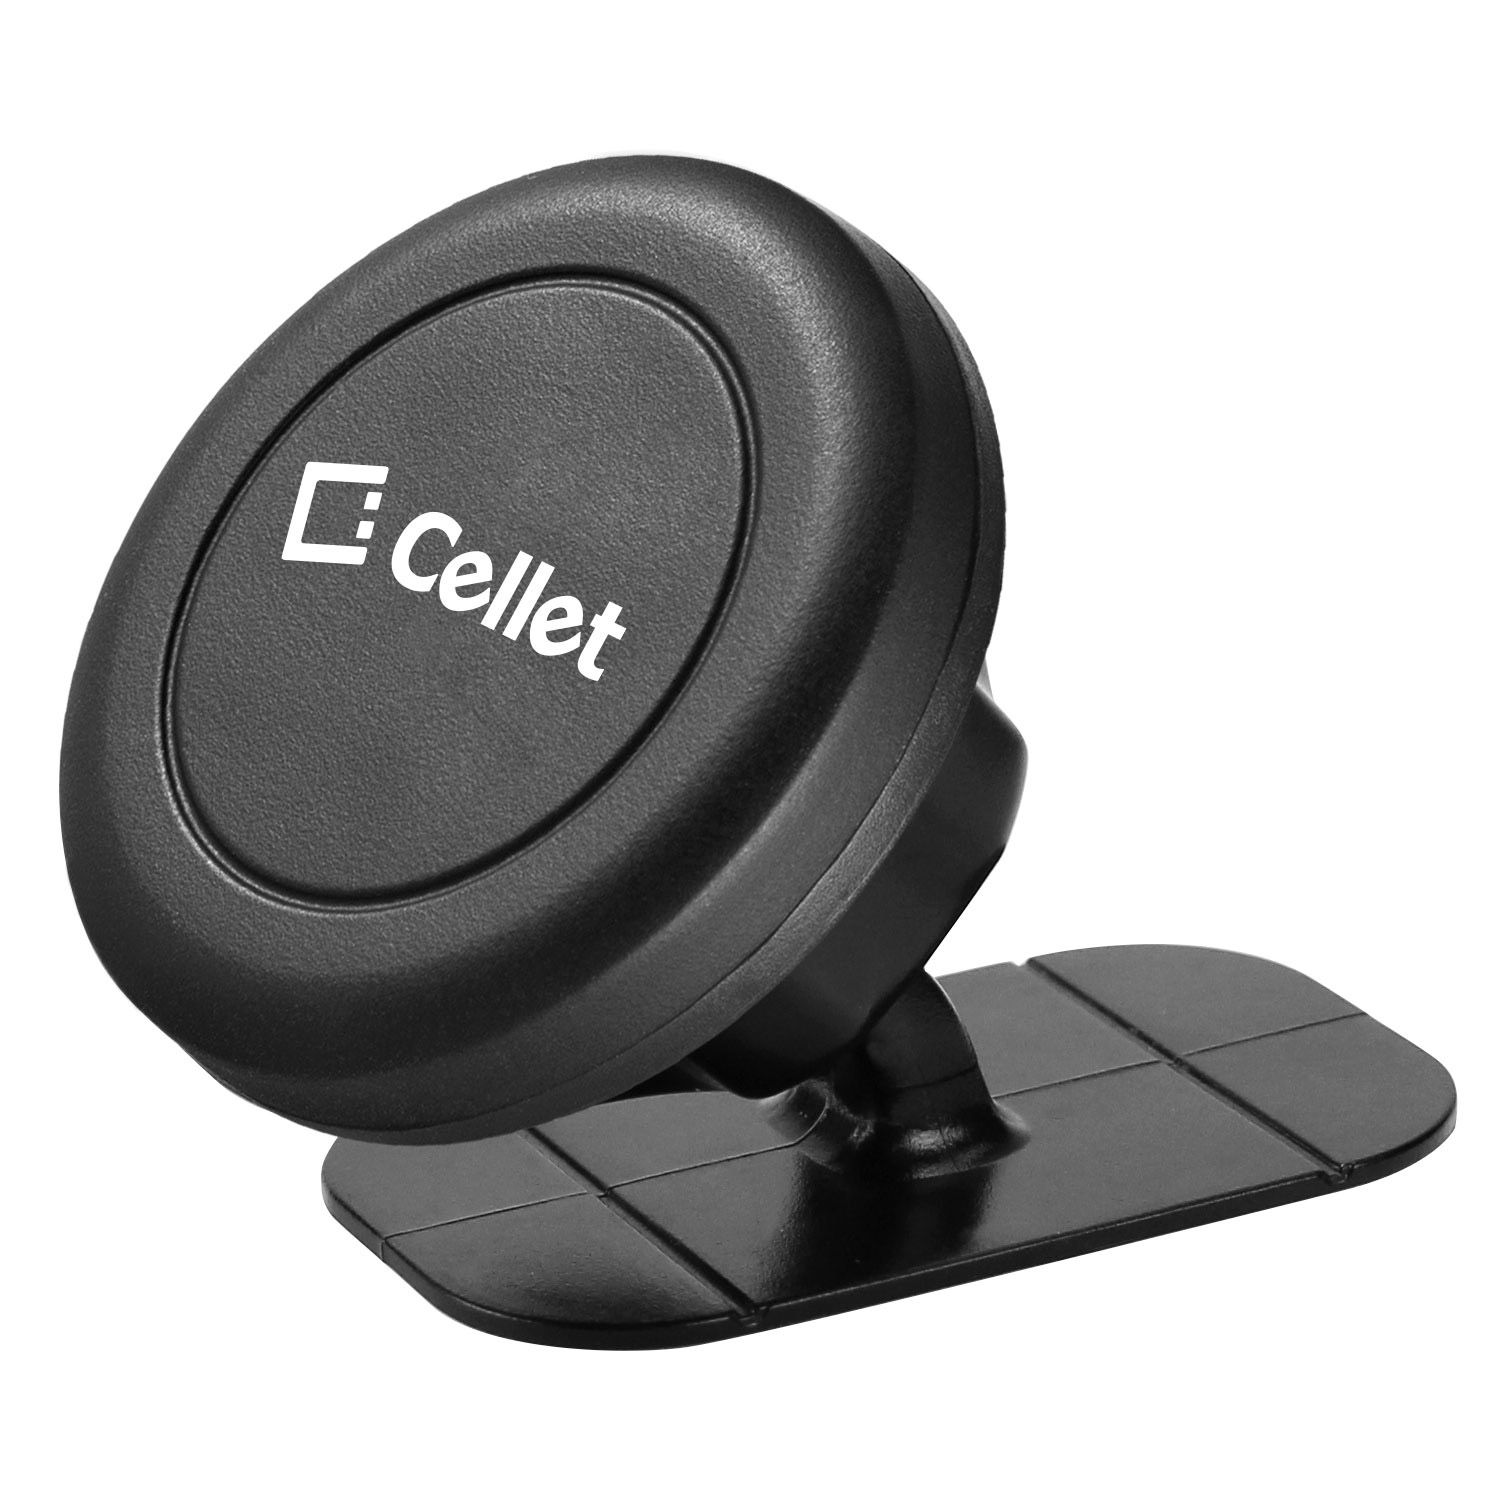 wholesale cellphone accessories CELLET MOUNTS